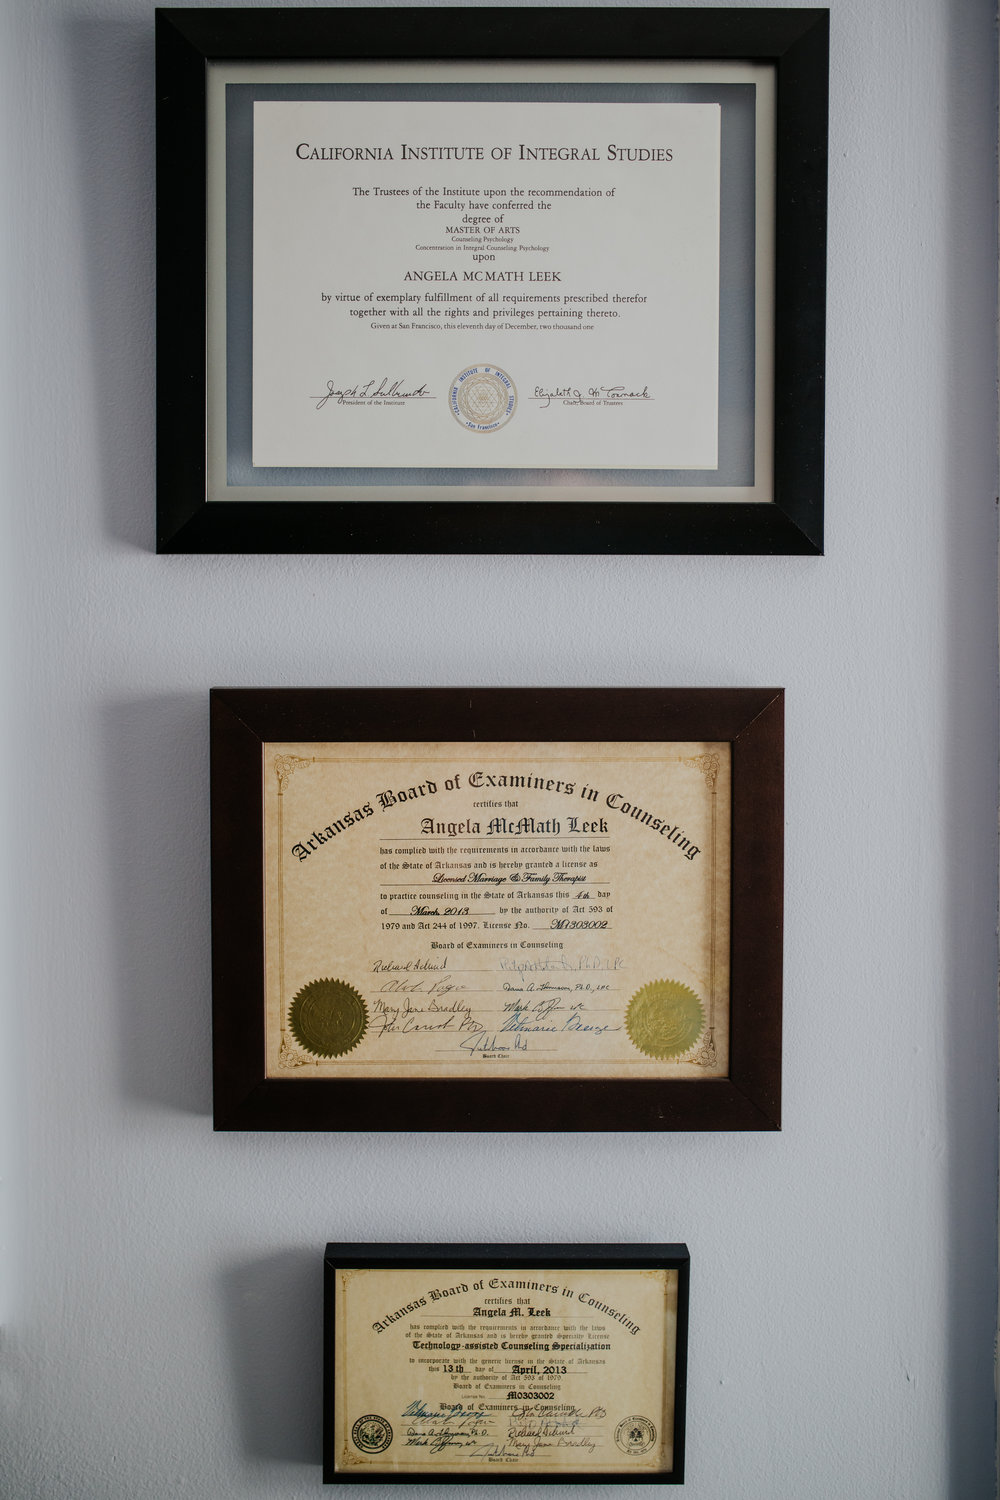 Degrees and Credentials -  BA, Human Studies, Warren Wilson College.  Asheville, NC  1996MA, Integral Counseling Psychology, California Institute of Integral Studies.  San Francisco, CA  2001Marriage and Family Therapist (CA) MFC 41455Marriage and Family Therapist (AR) m1303002Marriage and Family Therapist (GA) MFT001613Licensed Professional Counselor (AR) #P1710368Technology Assisted Specialization (AR)Certified Holistic Life CoachRYT 200 (Registered Yoga Teacher) Yoga GypsyPost graduate coursework at University of Arkansas towards LPC licensure 2016-2017